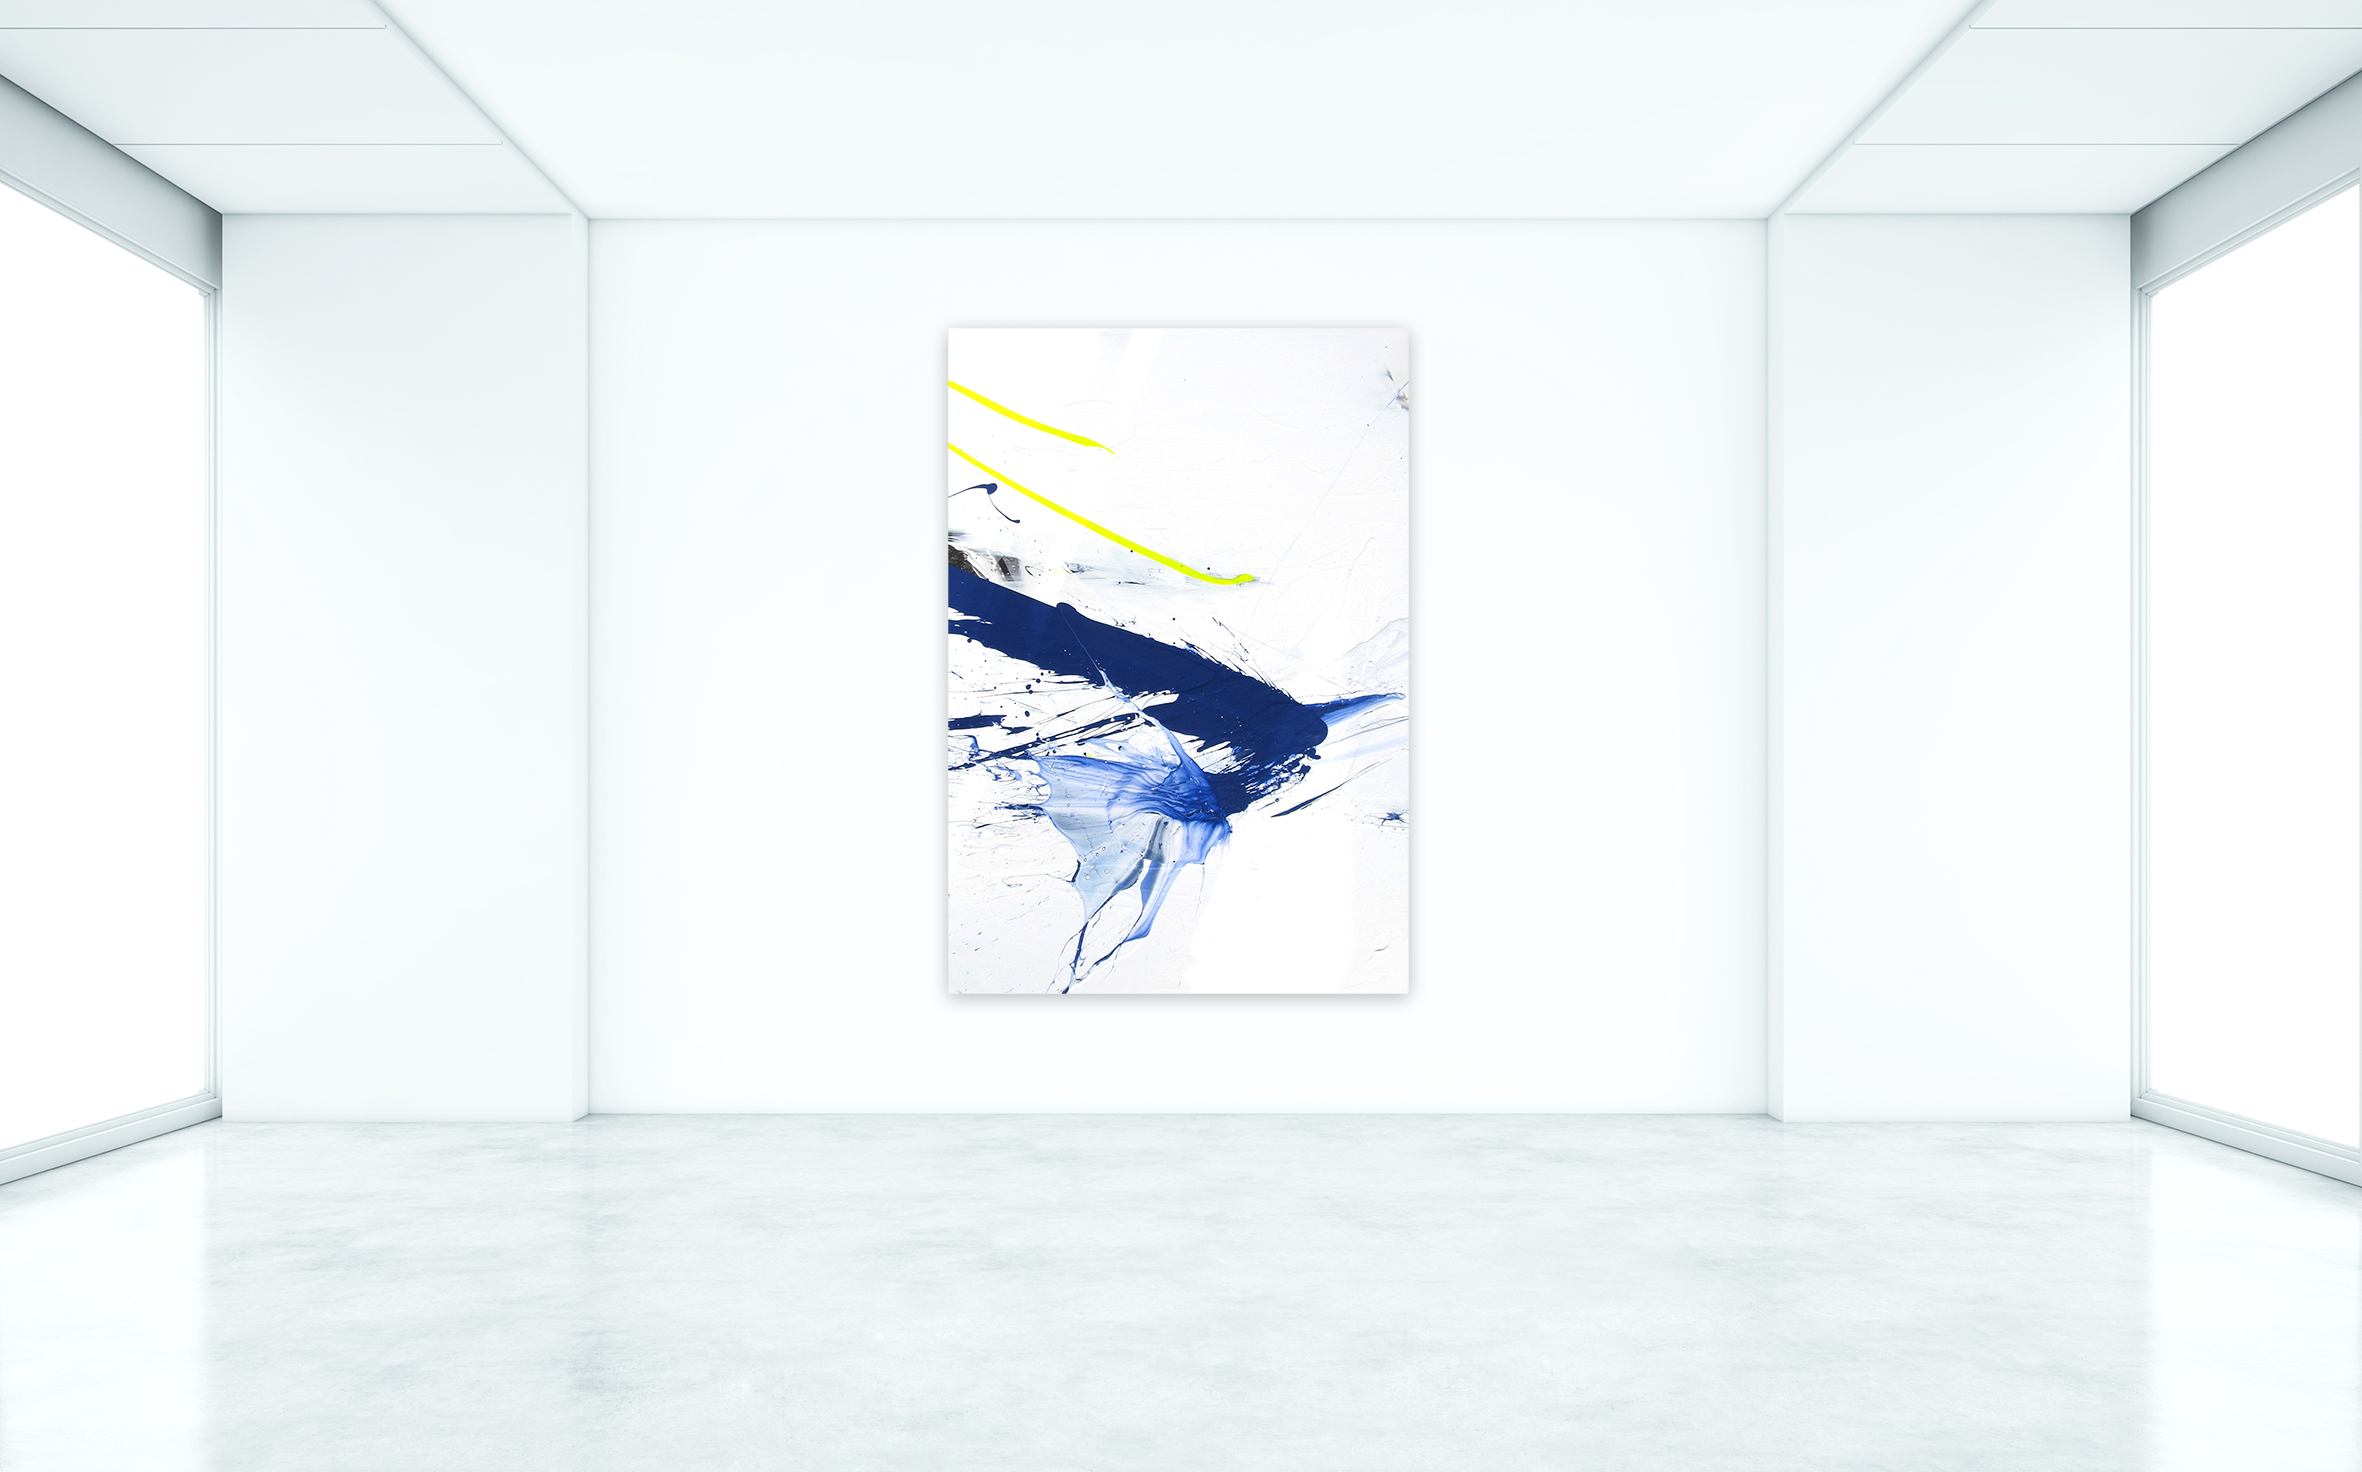 Peter Rive - She Speeds, 2013. Installation View